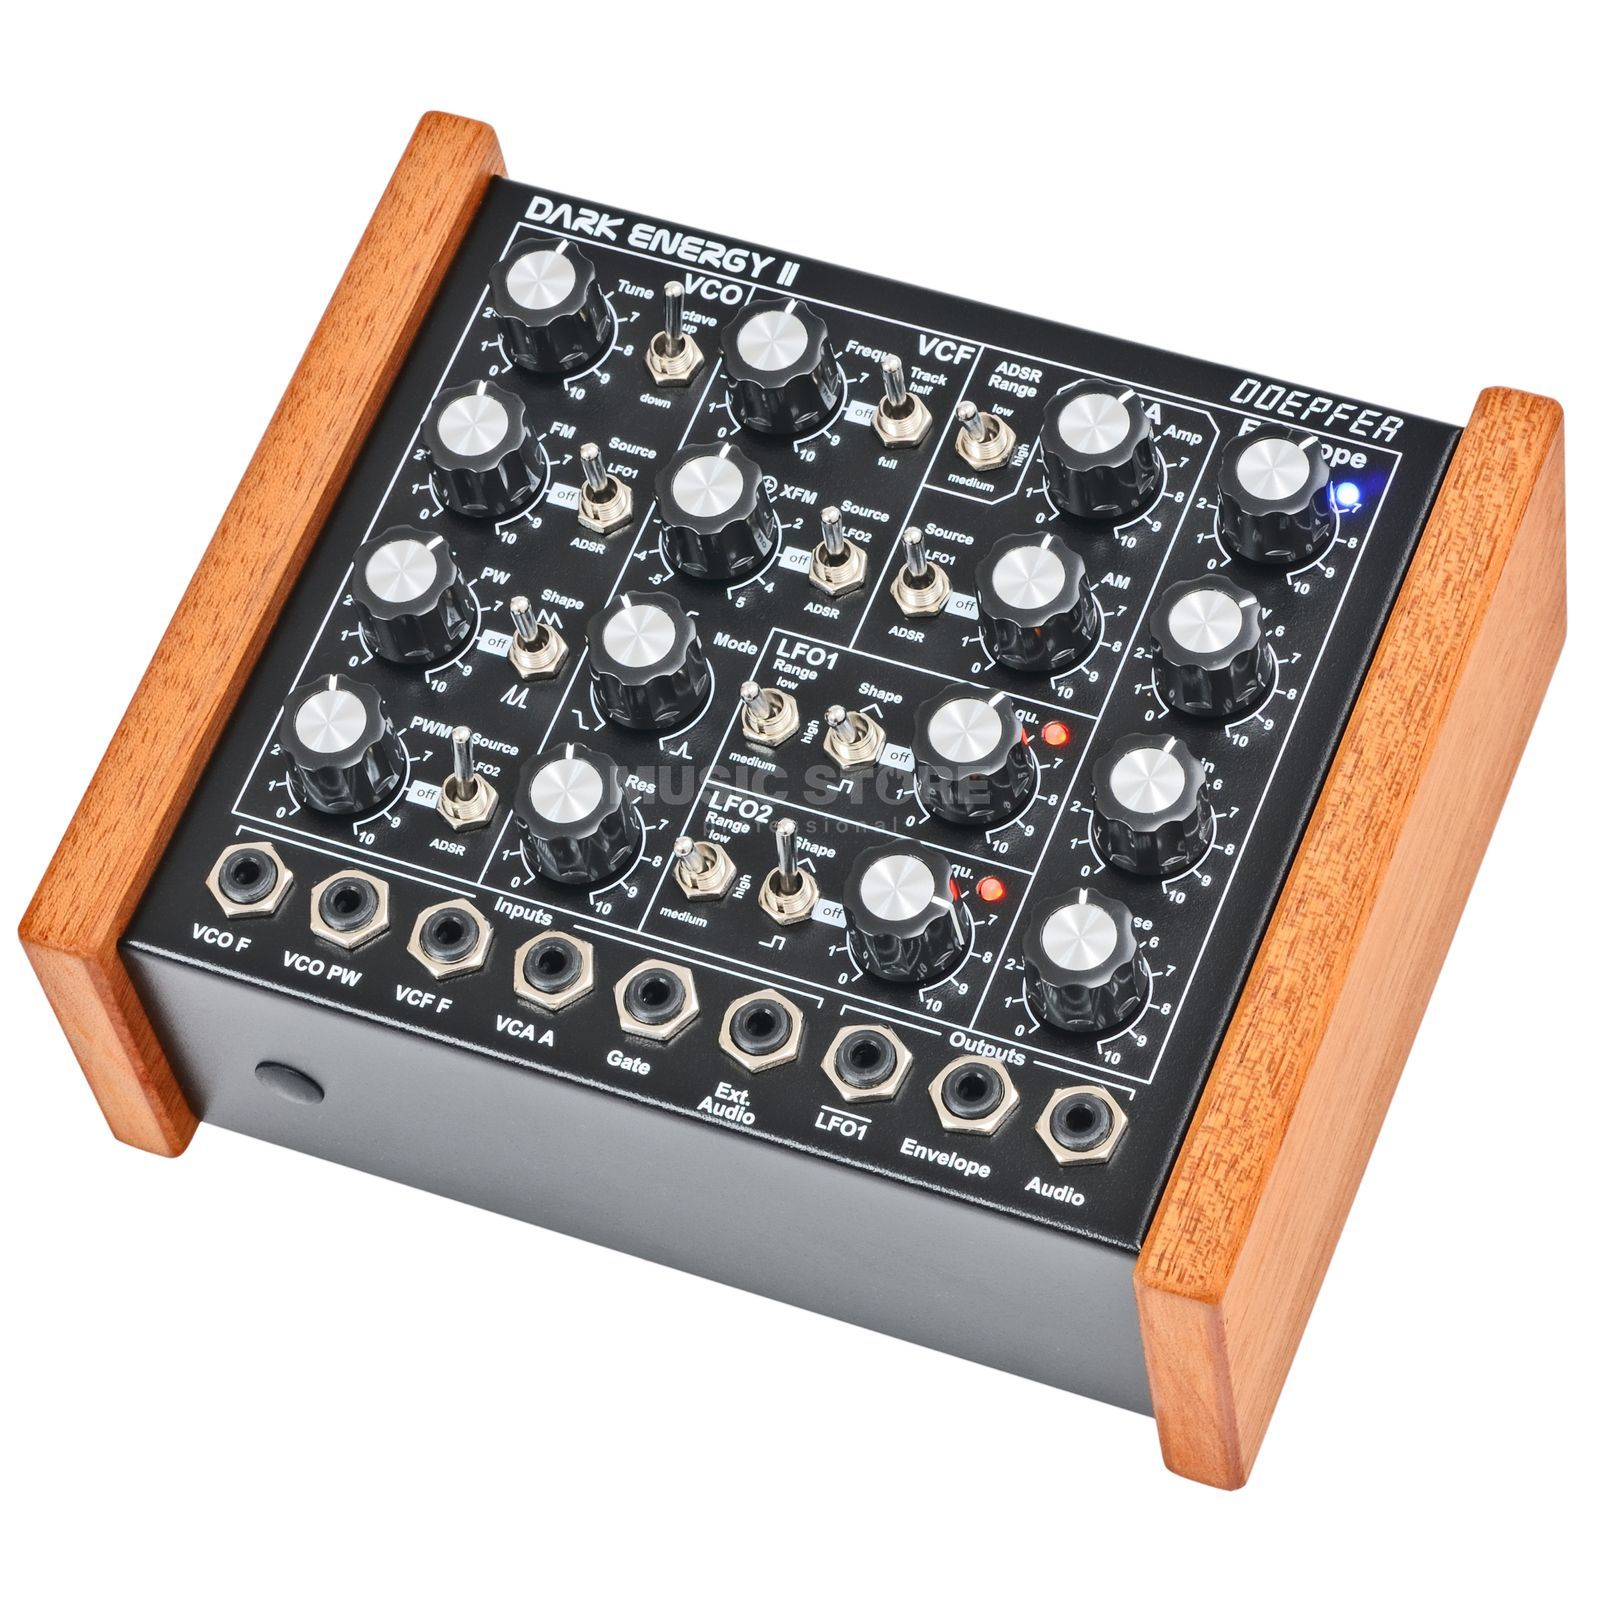 Doepfer Dark Energy II Analogue Synthesizer Product Image